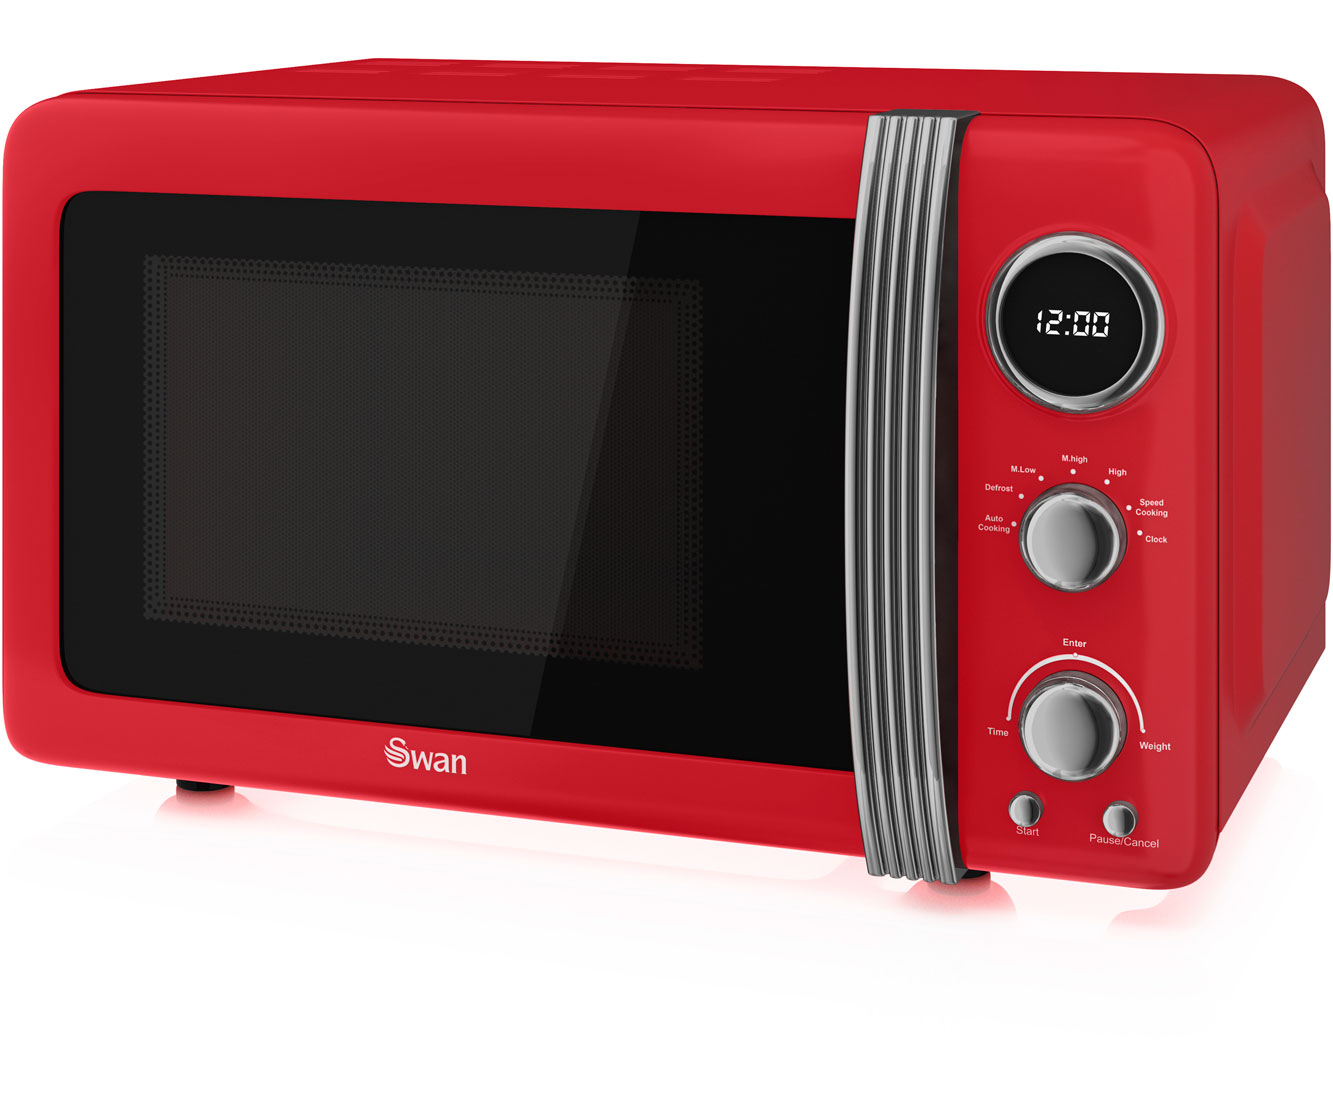 Swan Retro SM22030RN 20 Litre Microwave - Red